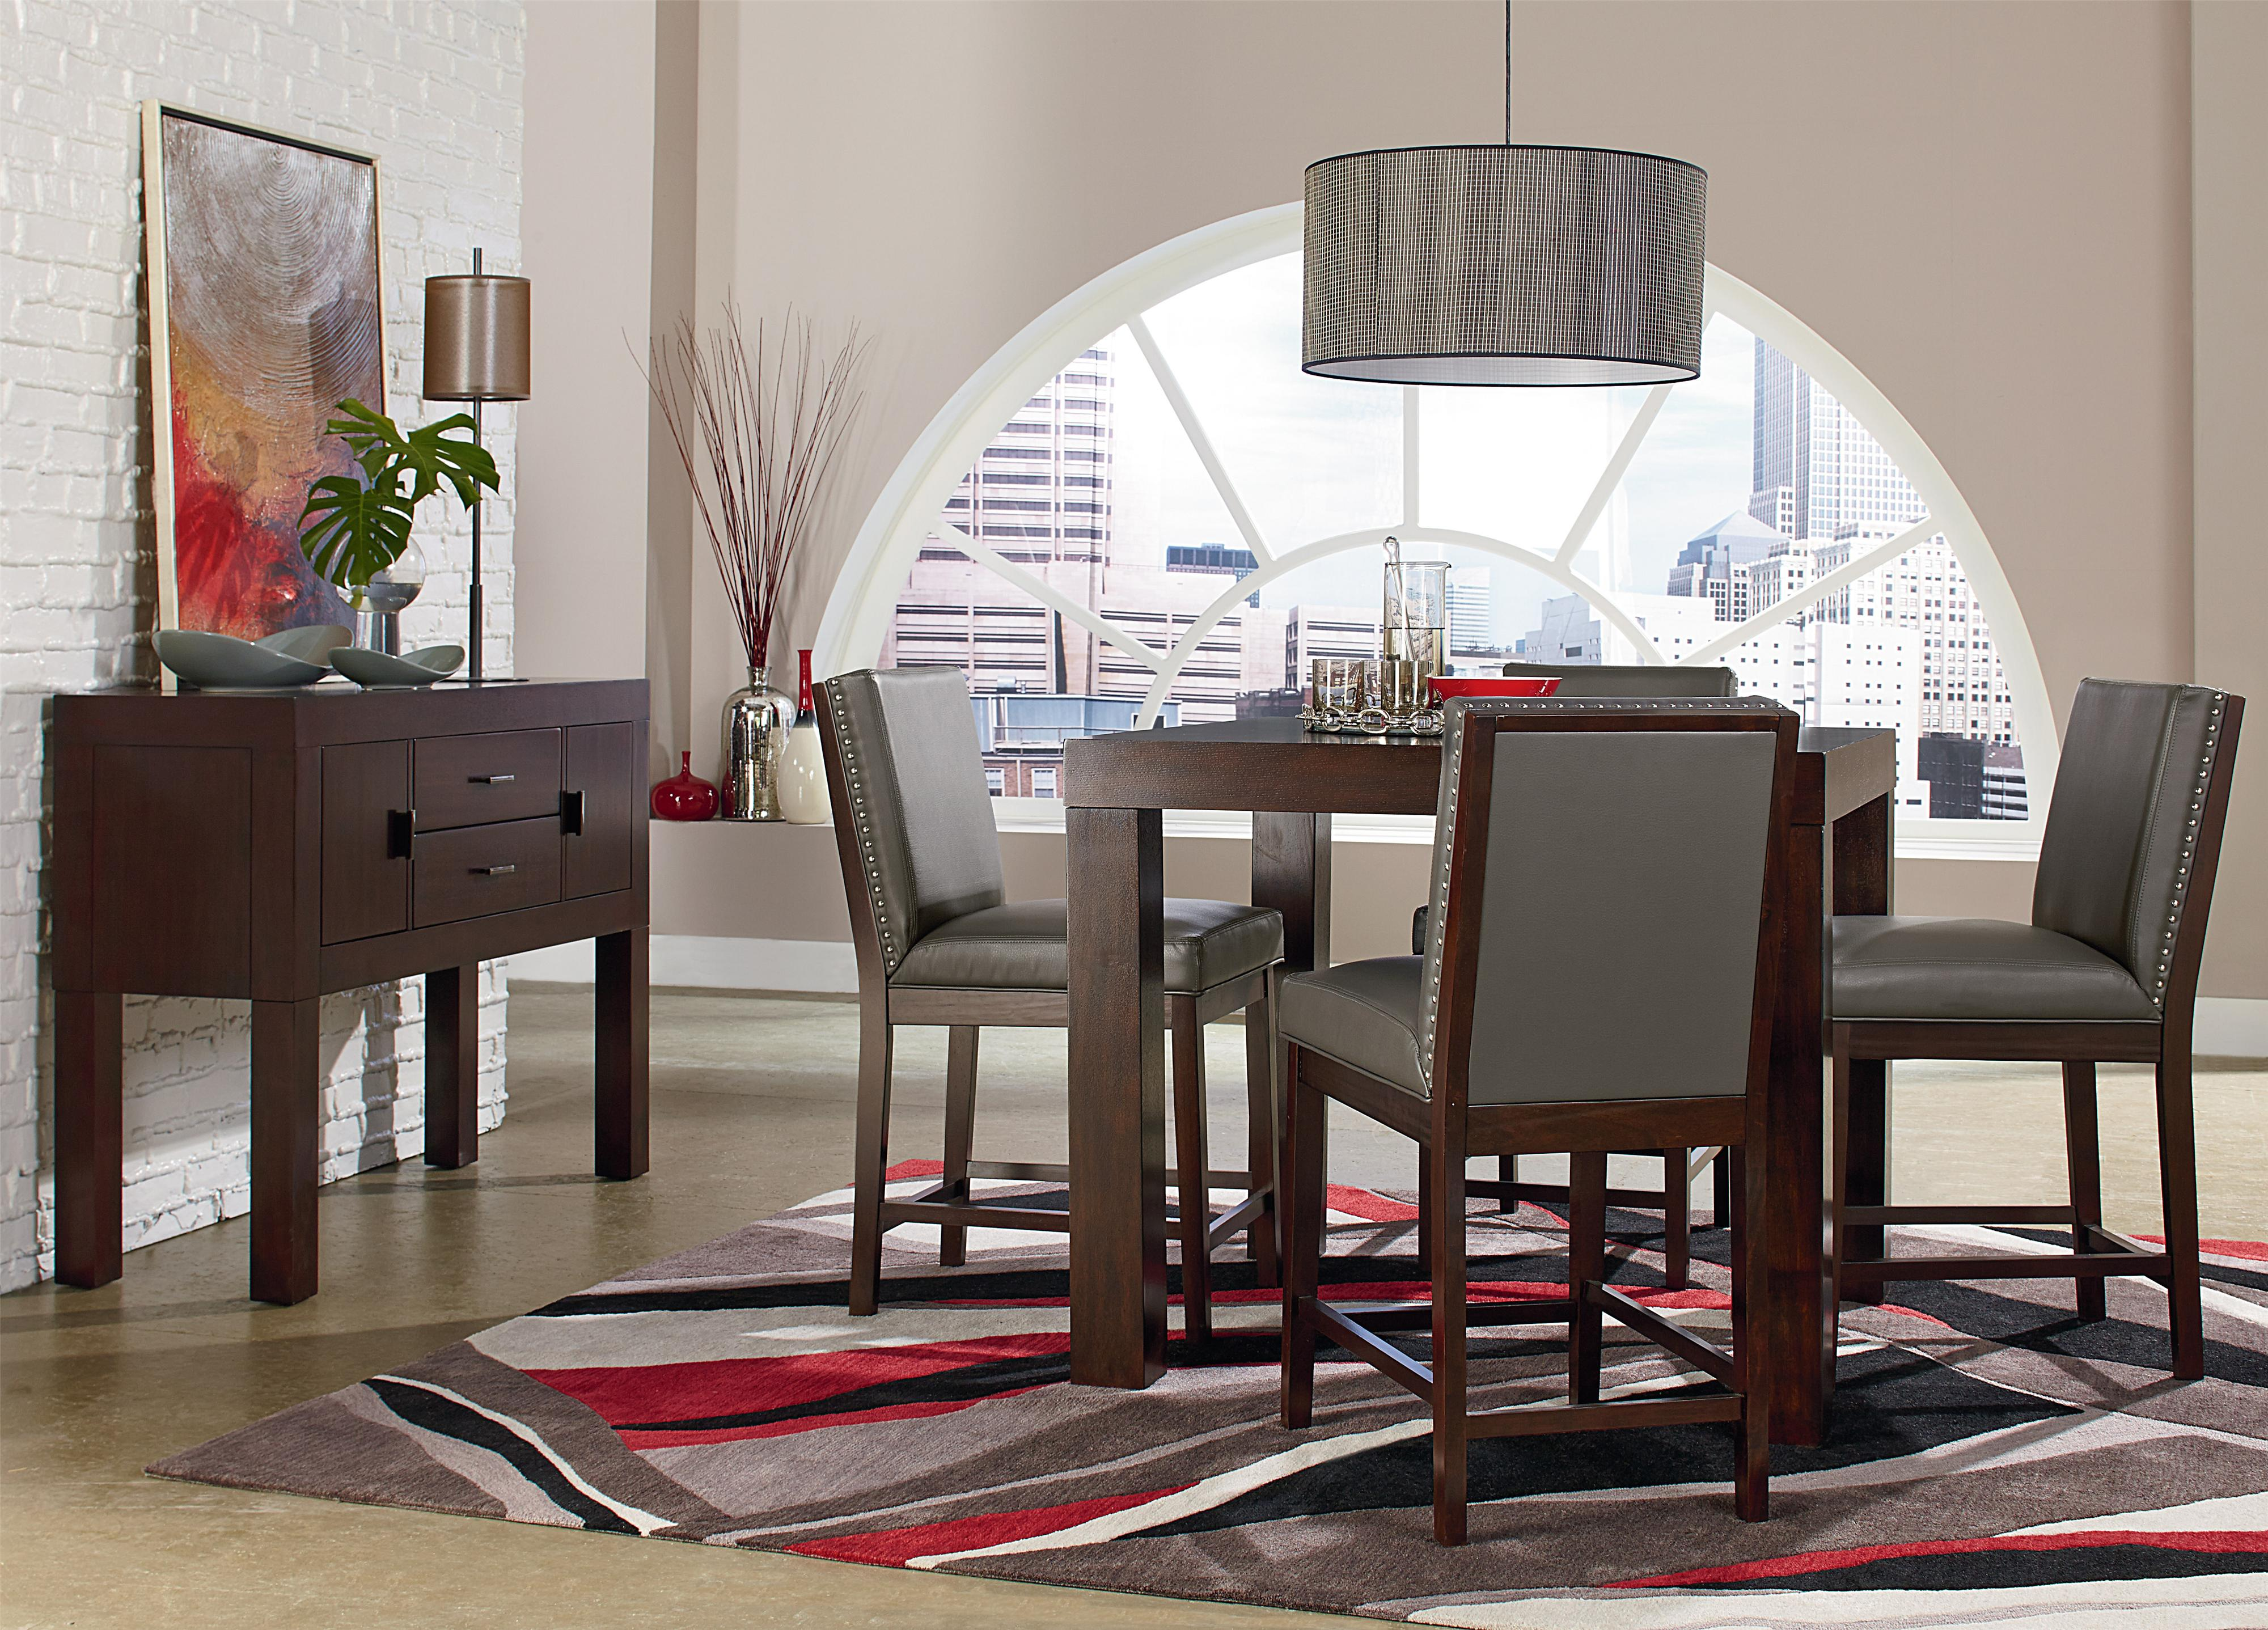 Standard Furniture Couture Elegance Dining Room Group - Item Number: 10560 C Dining Room Group 2